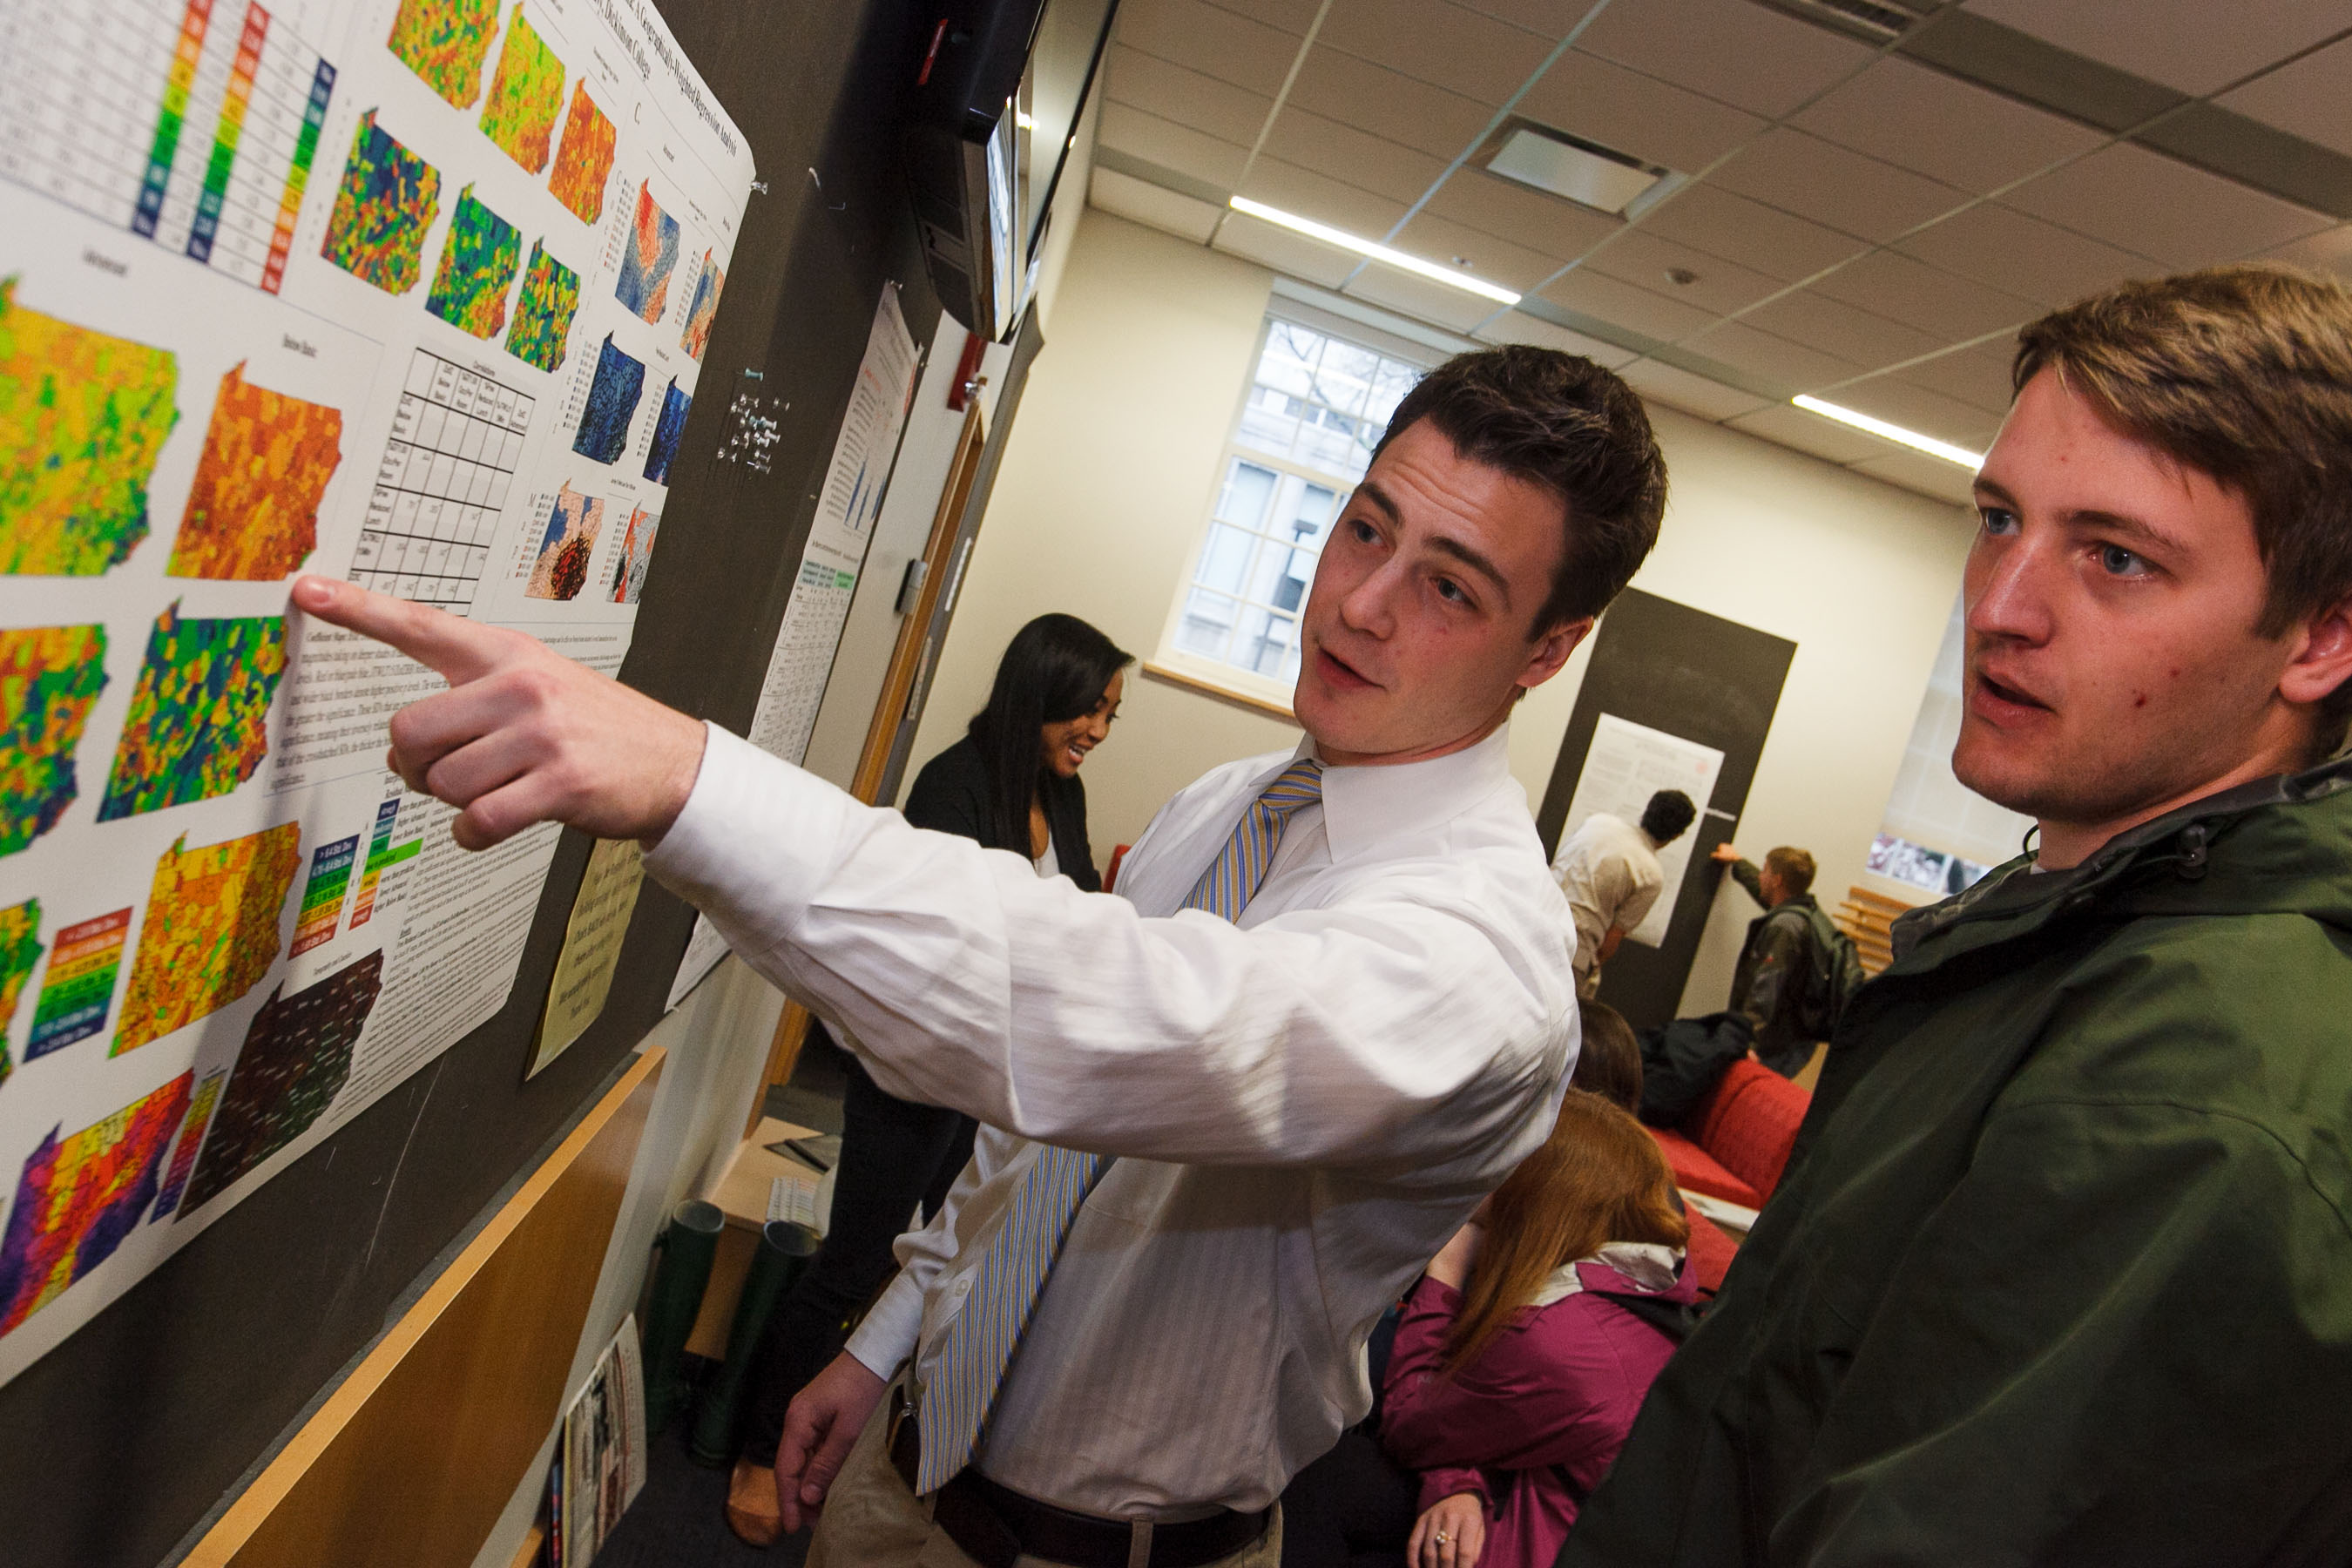 Student and professor at a poster session